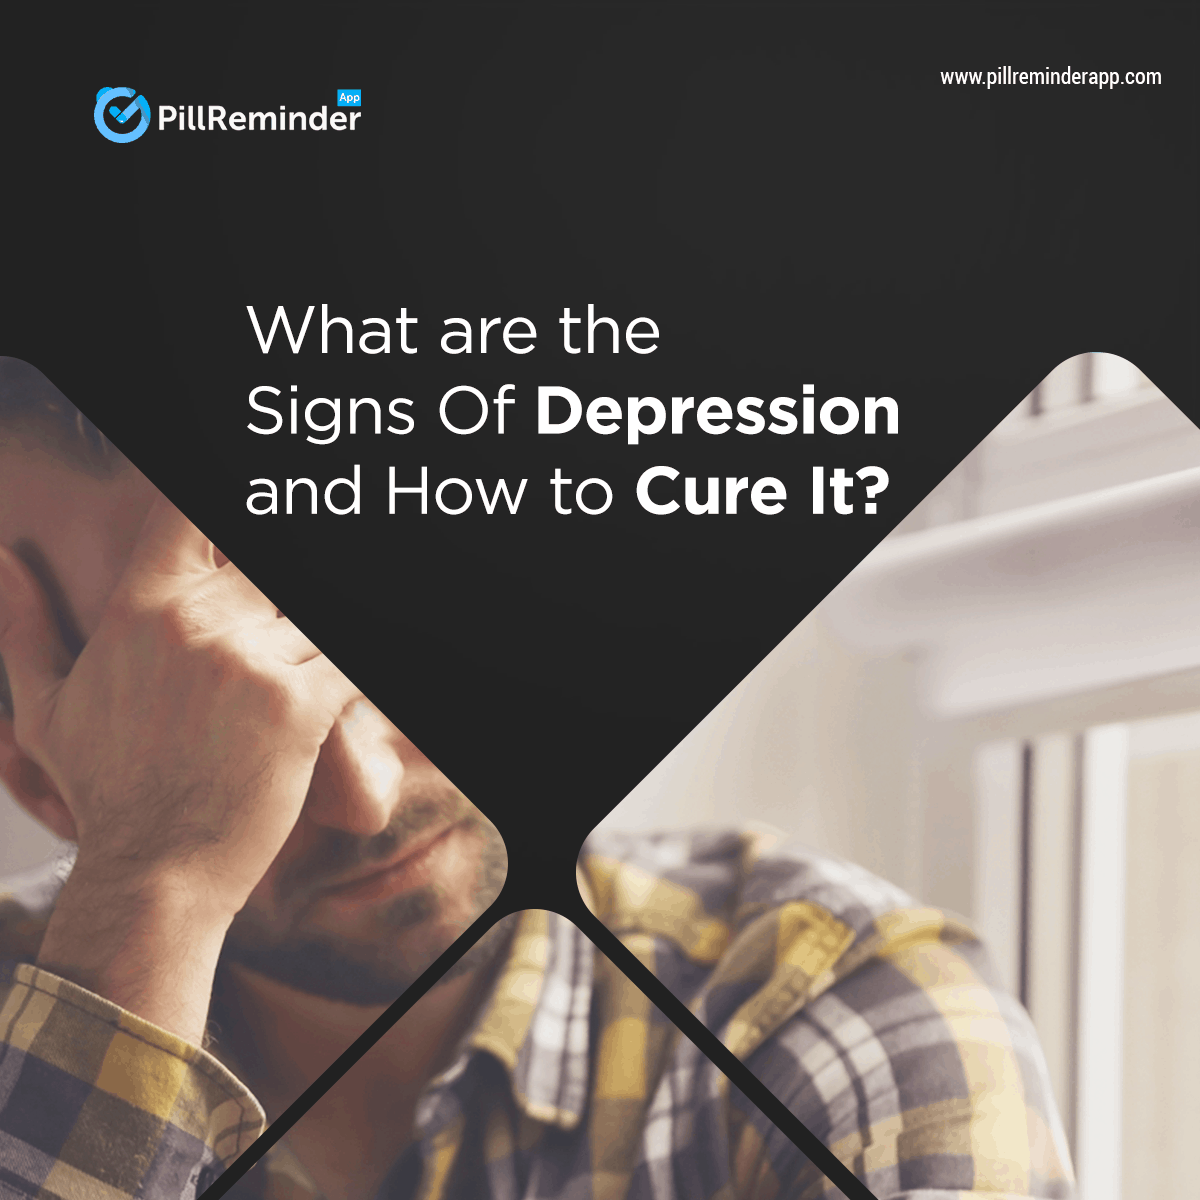 What Are The Signs Of Depression And How To Cure It?